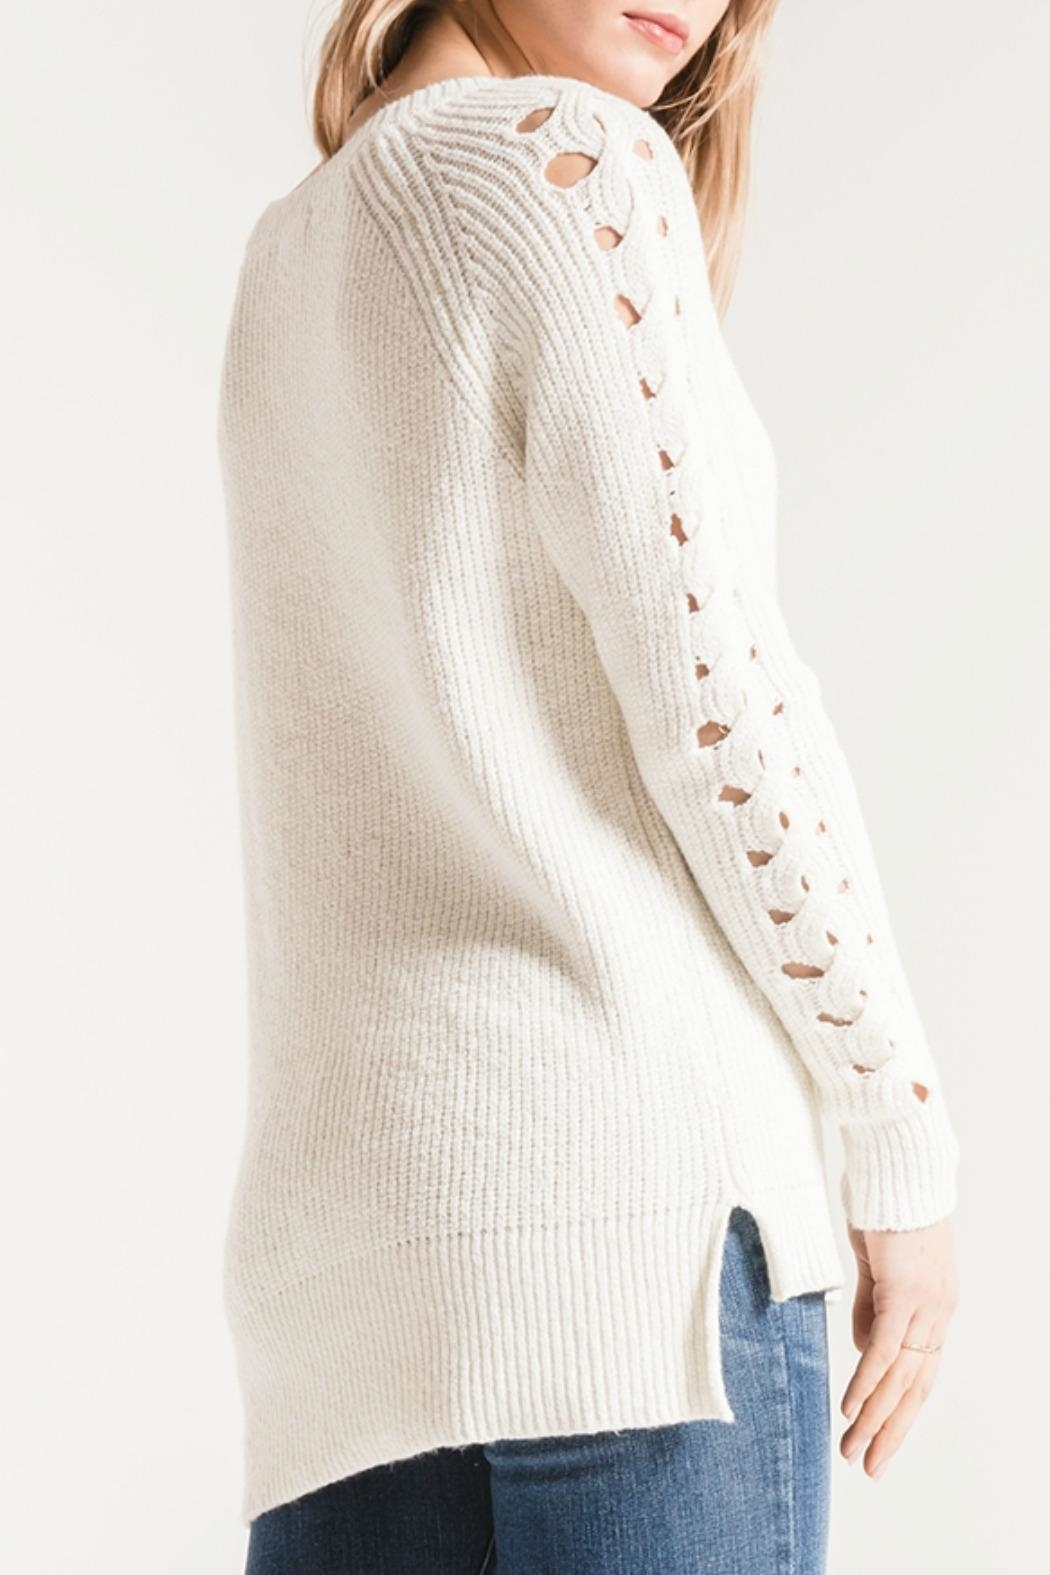 rag poets Gretchen Open-Knit Sweater - Front Full Image